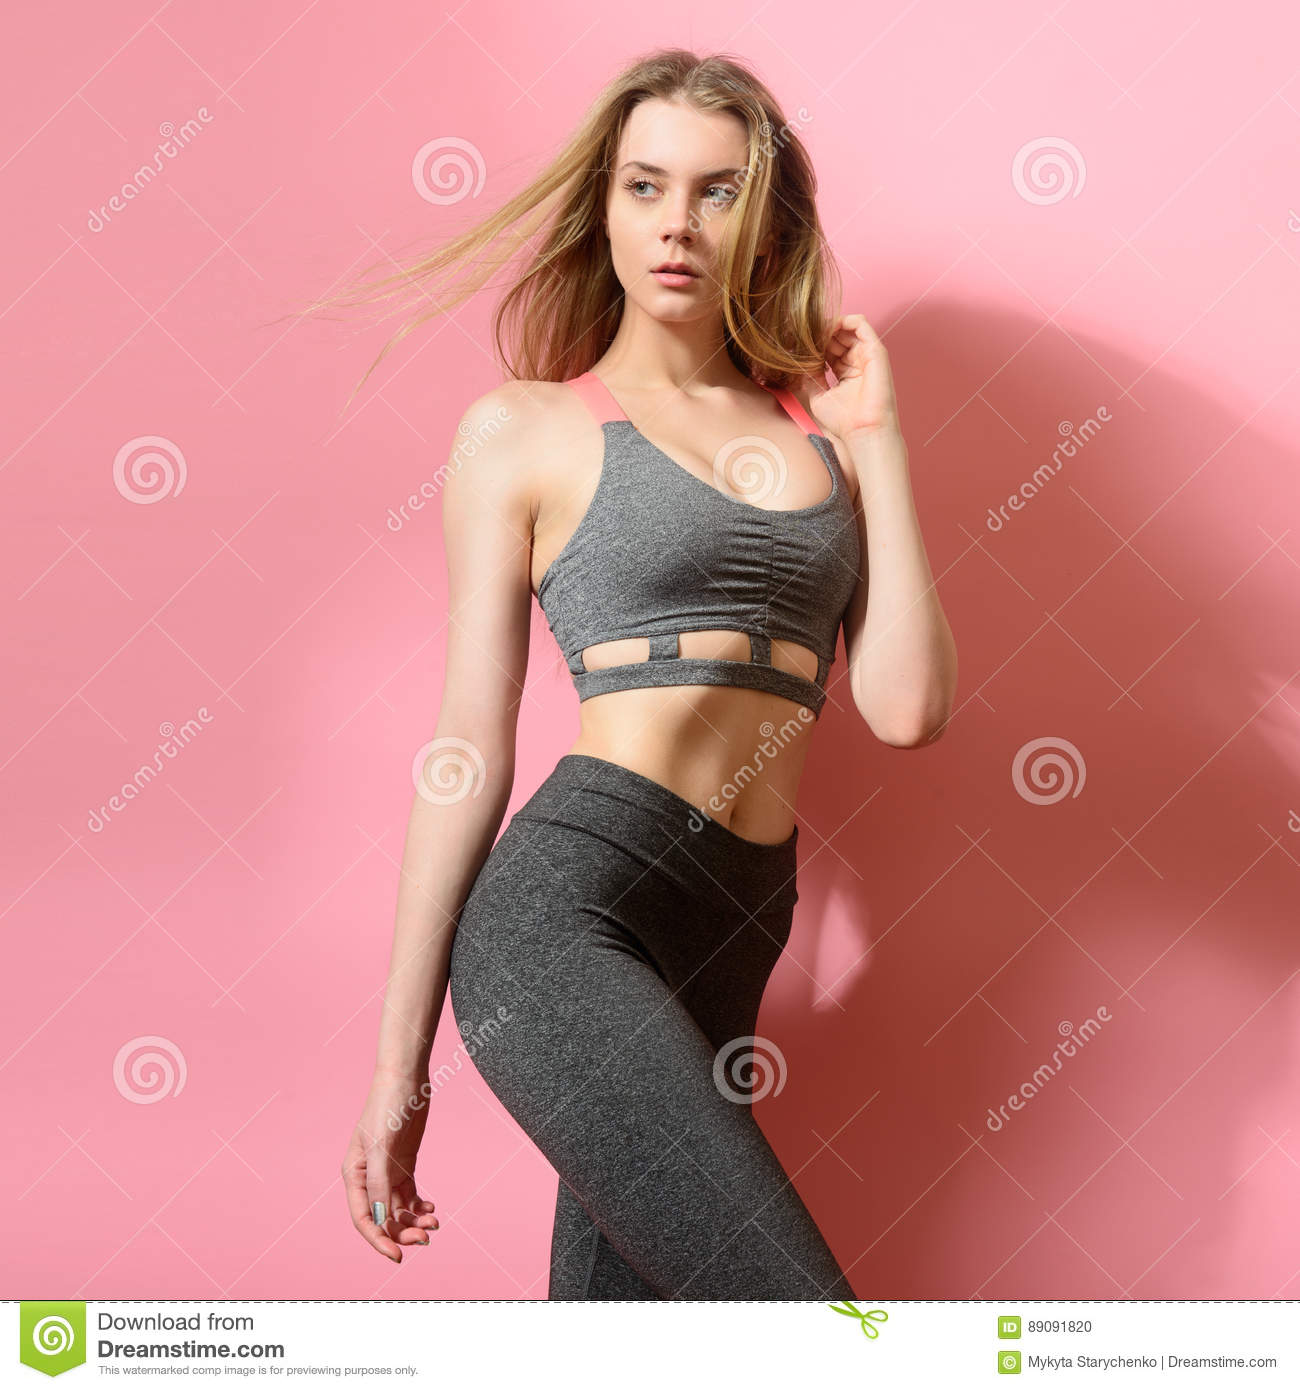 638a94aa1f Beautiful Fitness Model Girl Posing Wearing Sport Clothes. Stock ...